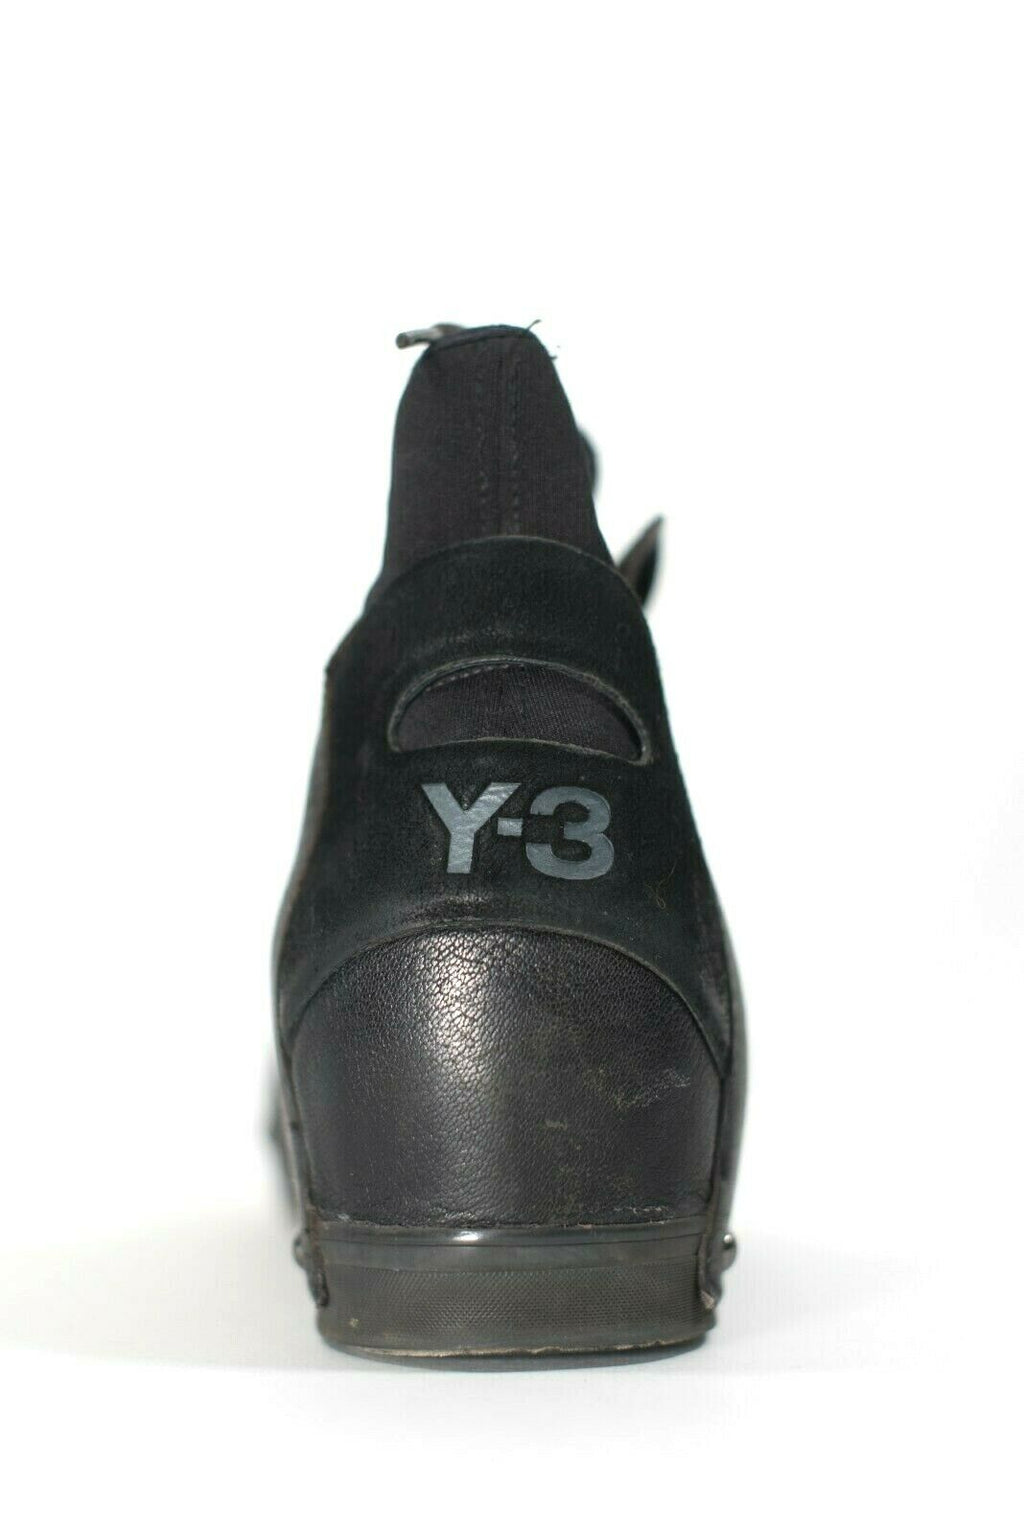 Y-3 Yohji Yamamoto Women Size 7 Black Sneakers Lace Up Hidden Wedge Flat Shoes